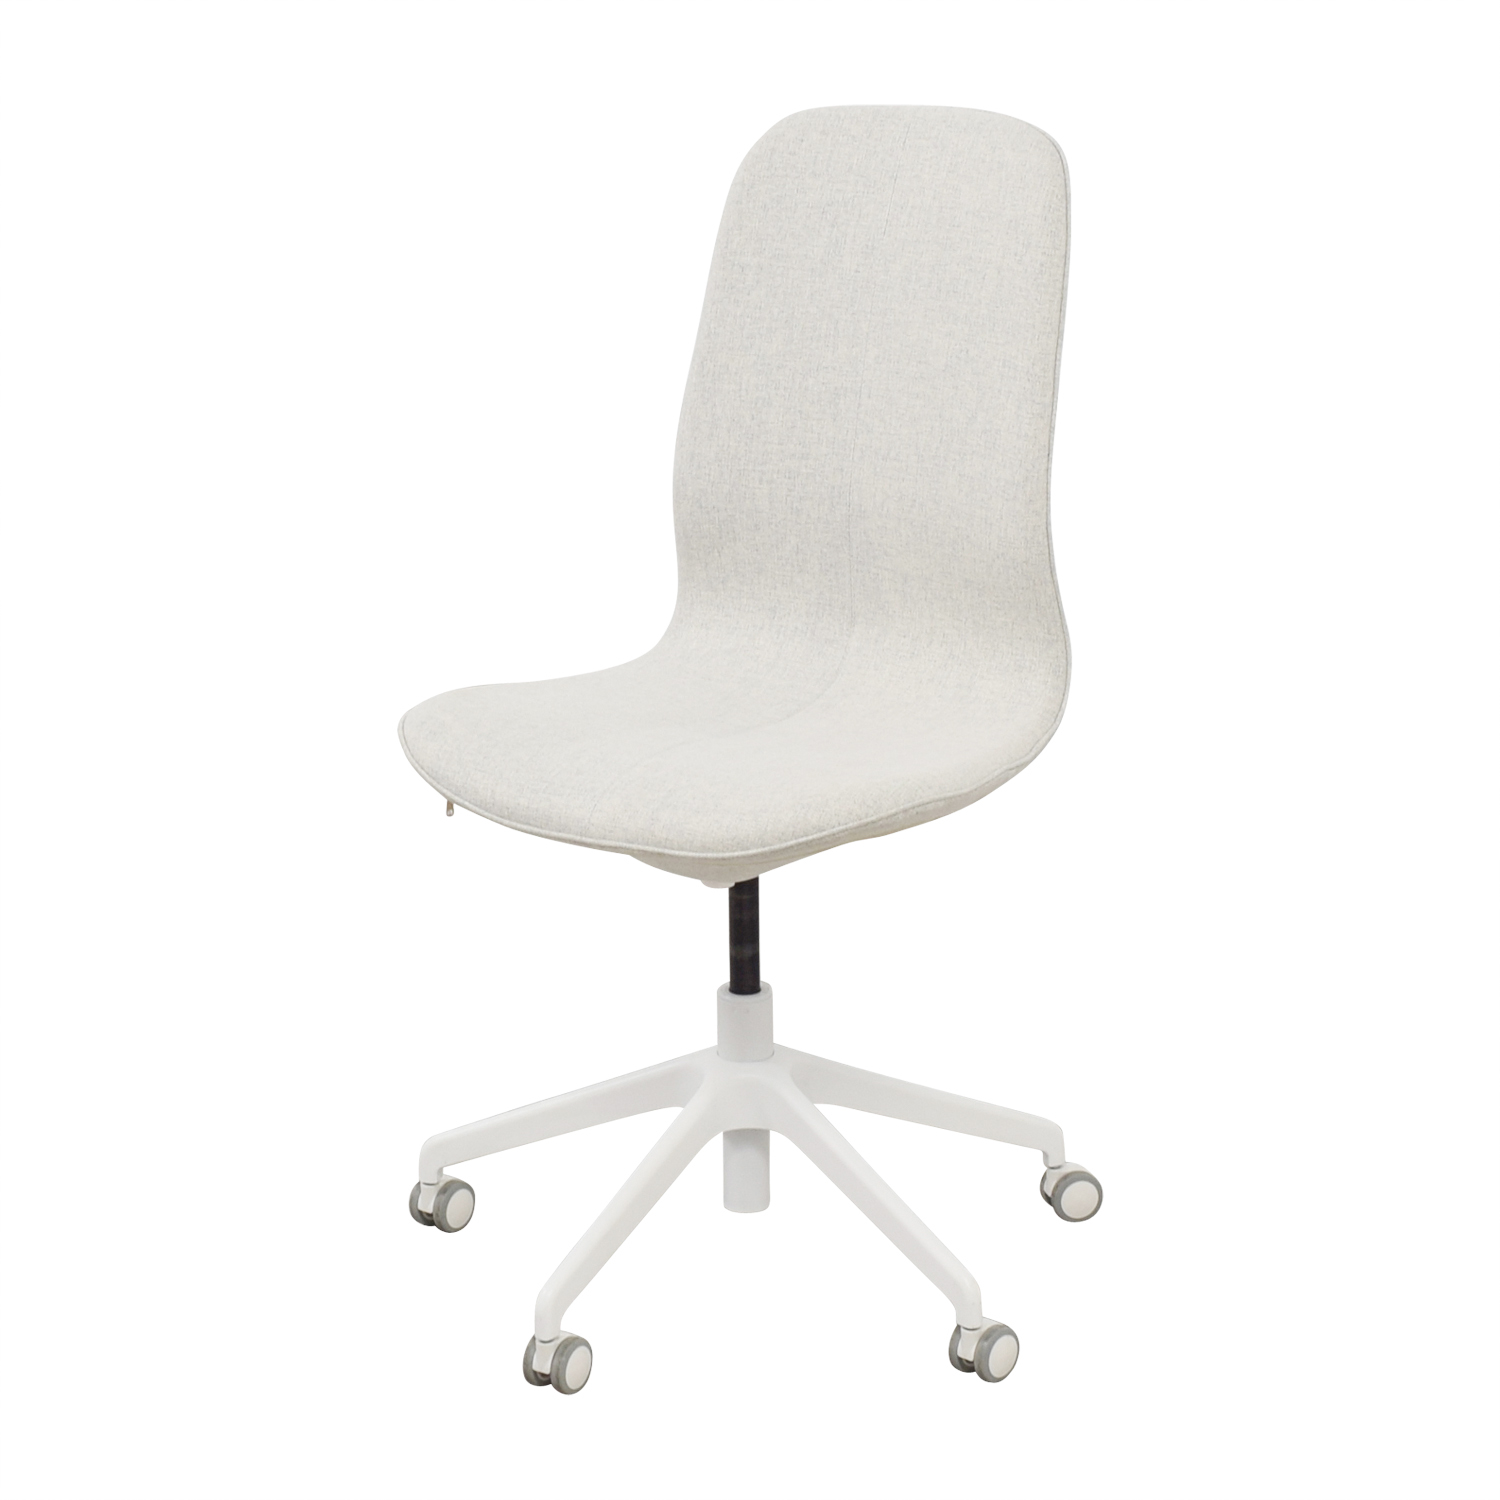 white chairs ikea chair. White Chairs Ikea Office Set. Shop Langfjall Swivel Chair Home 1